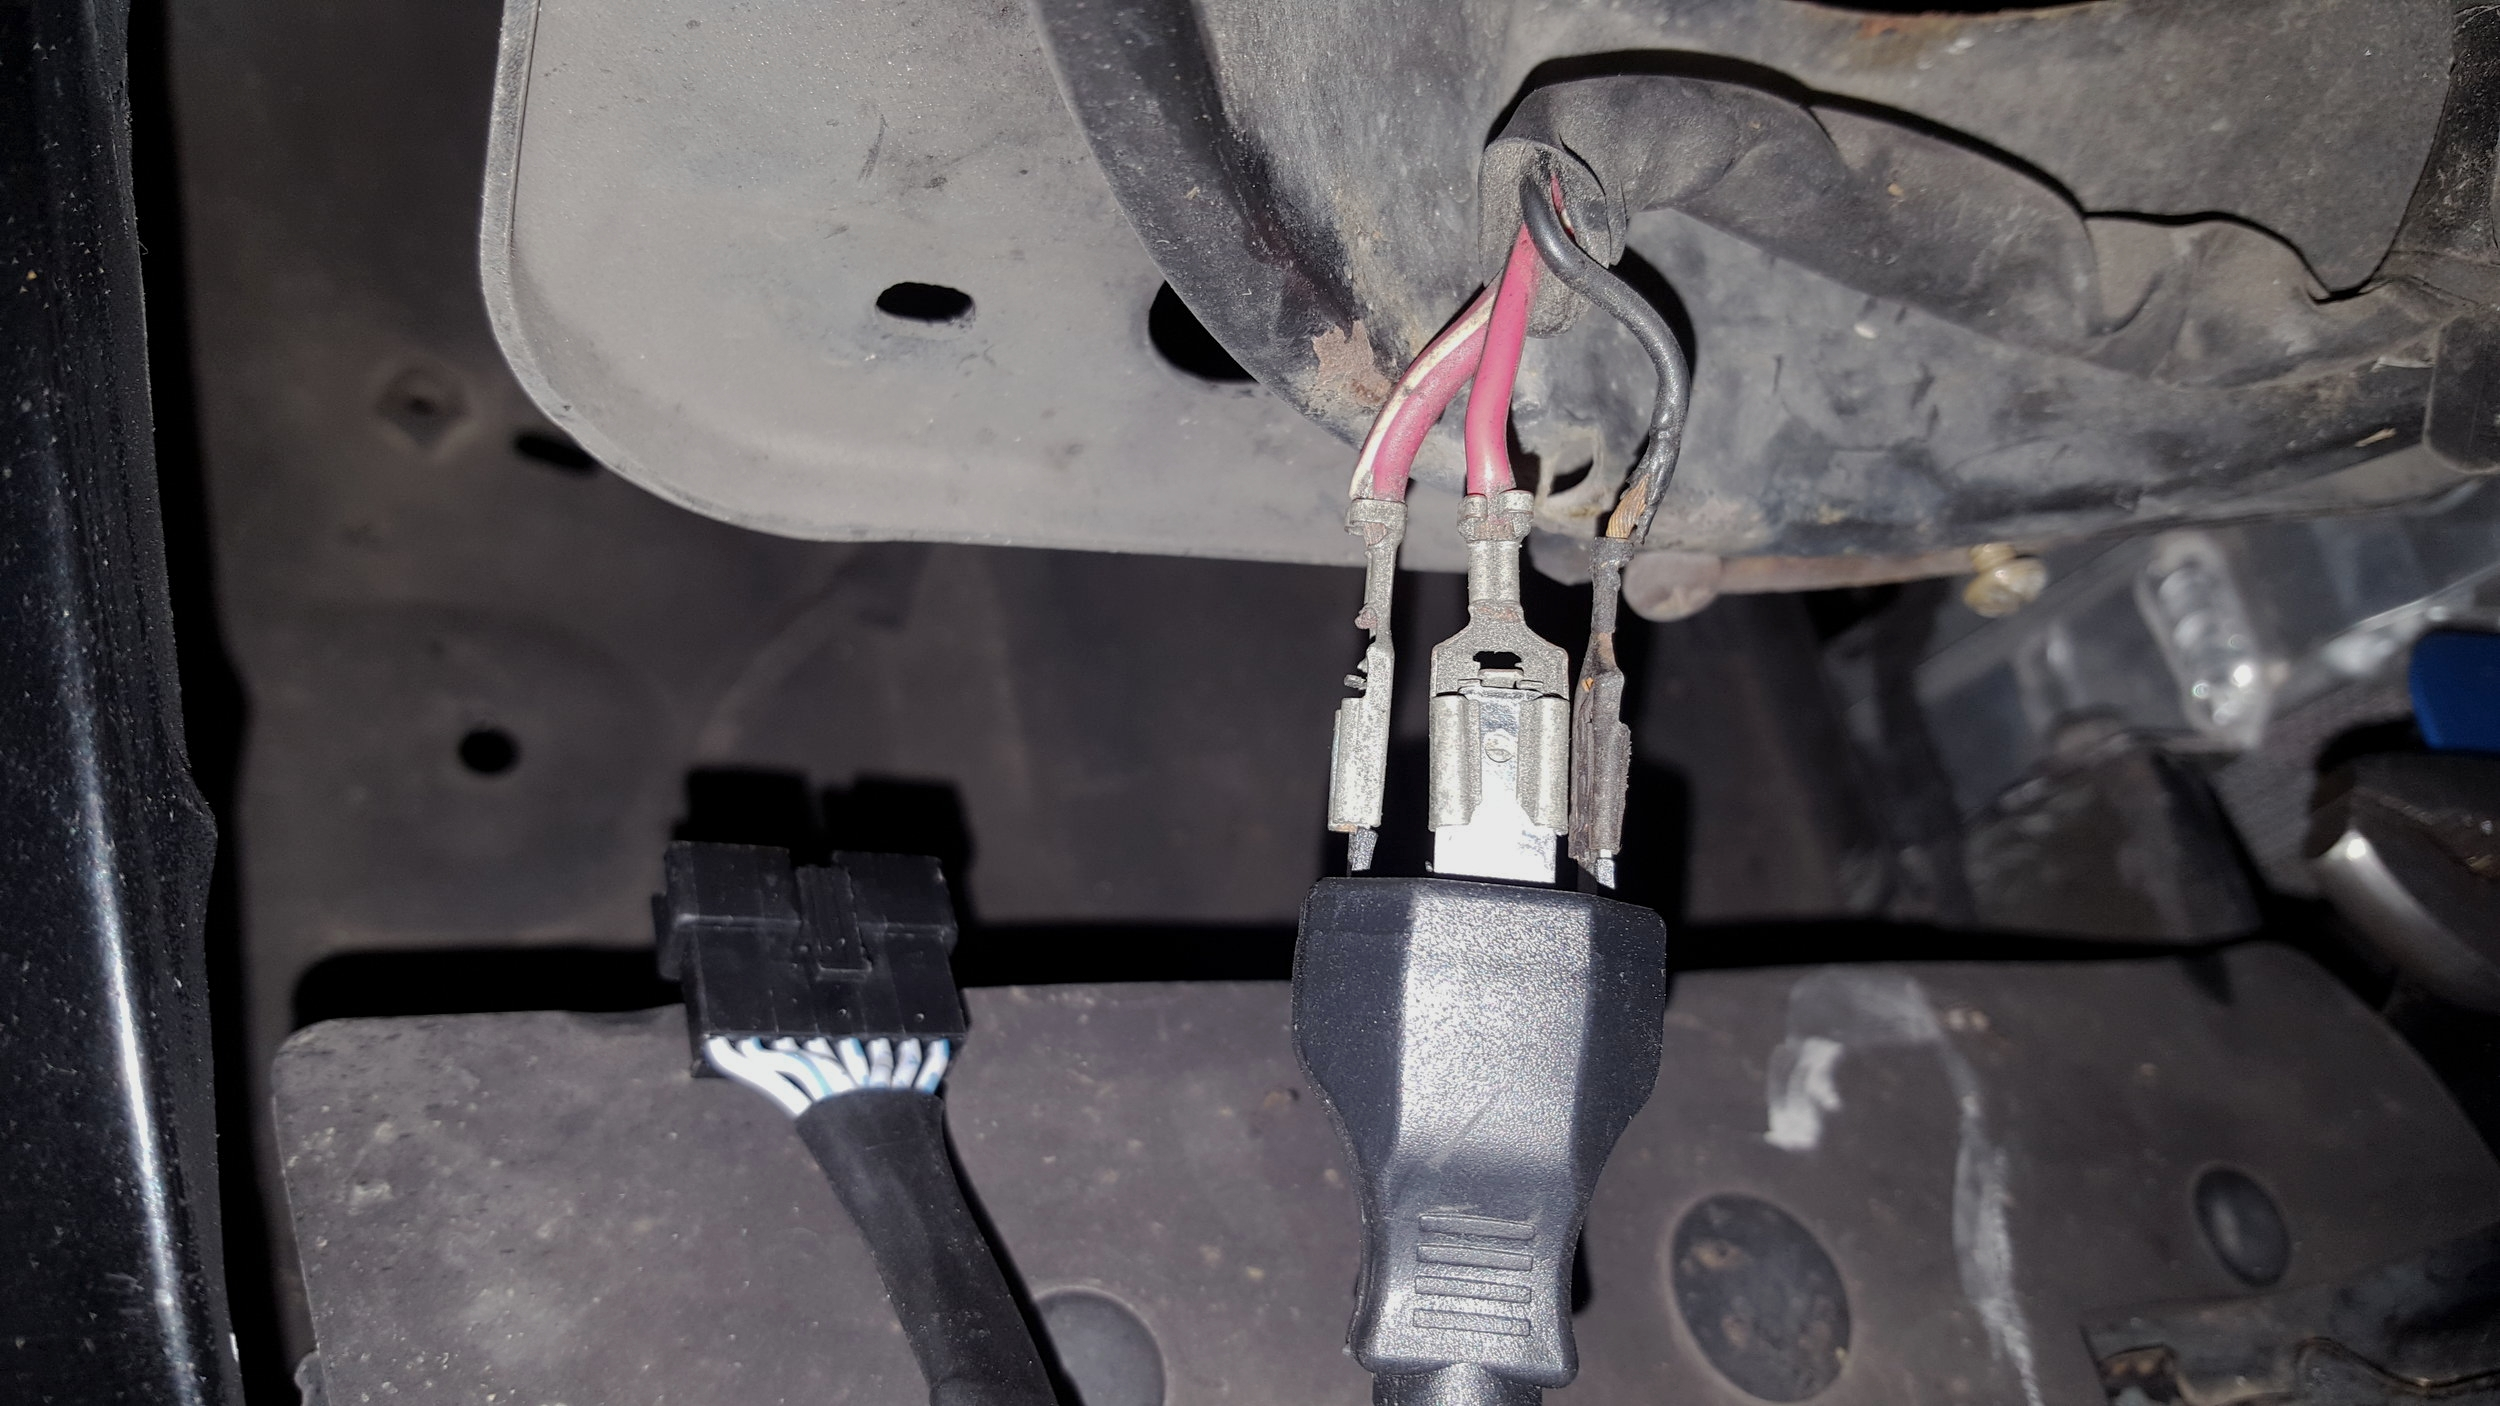 headlight motor wiring miata winnebago itasca diagrams na led bulbs in h4 housings review r theory motorsports i ended up tightly wrapping the three connections electrical tape afterwards